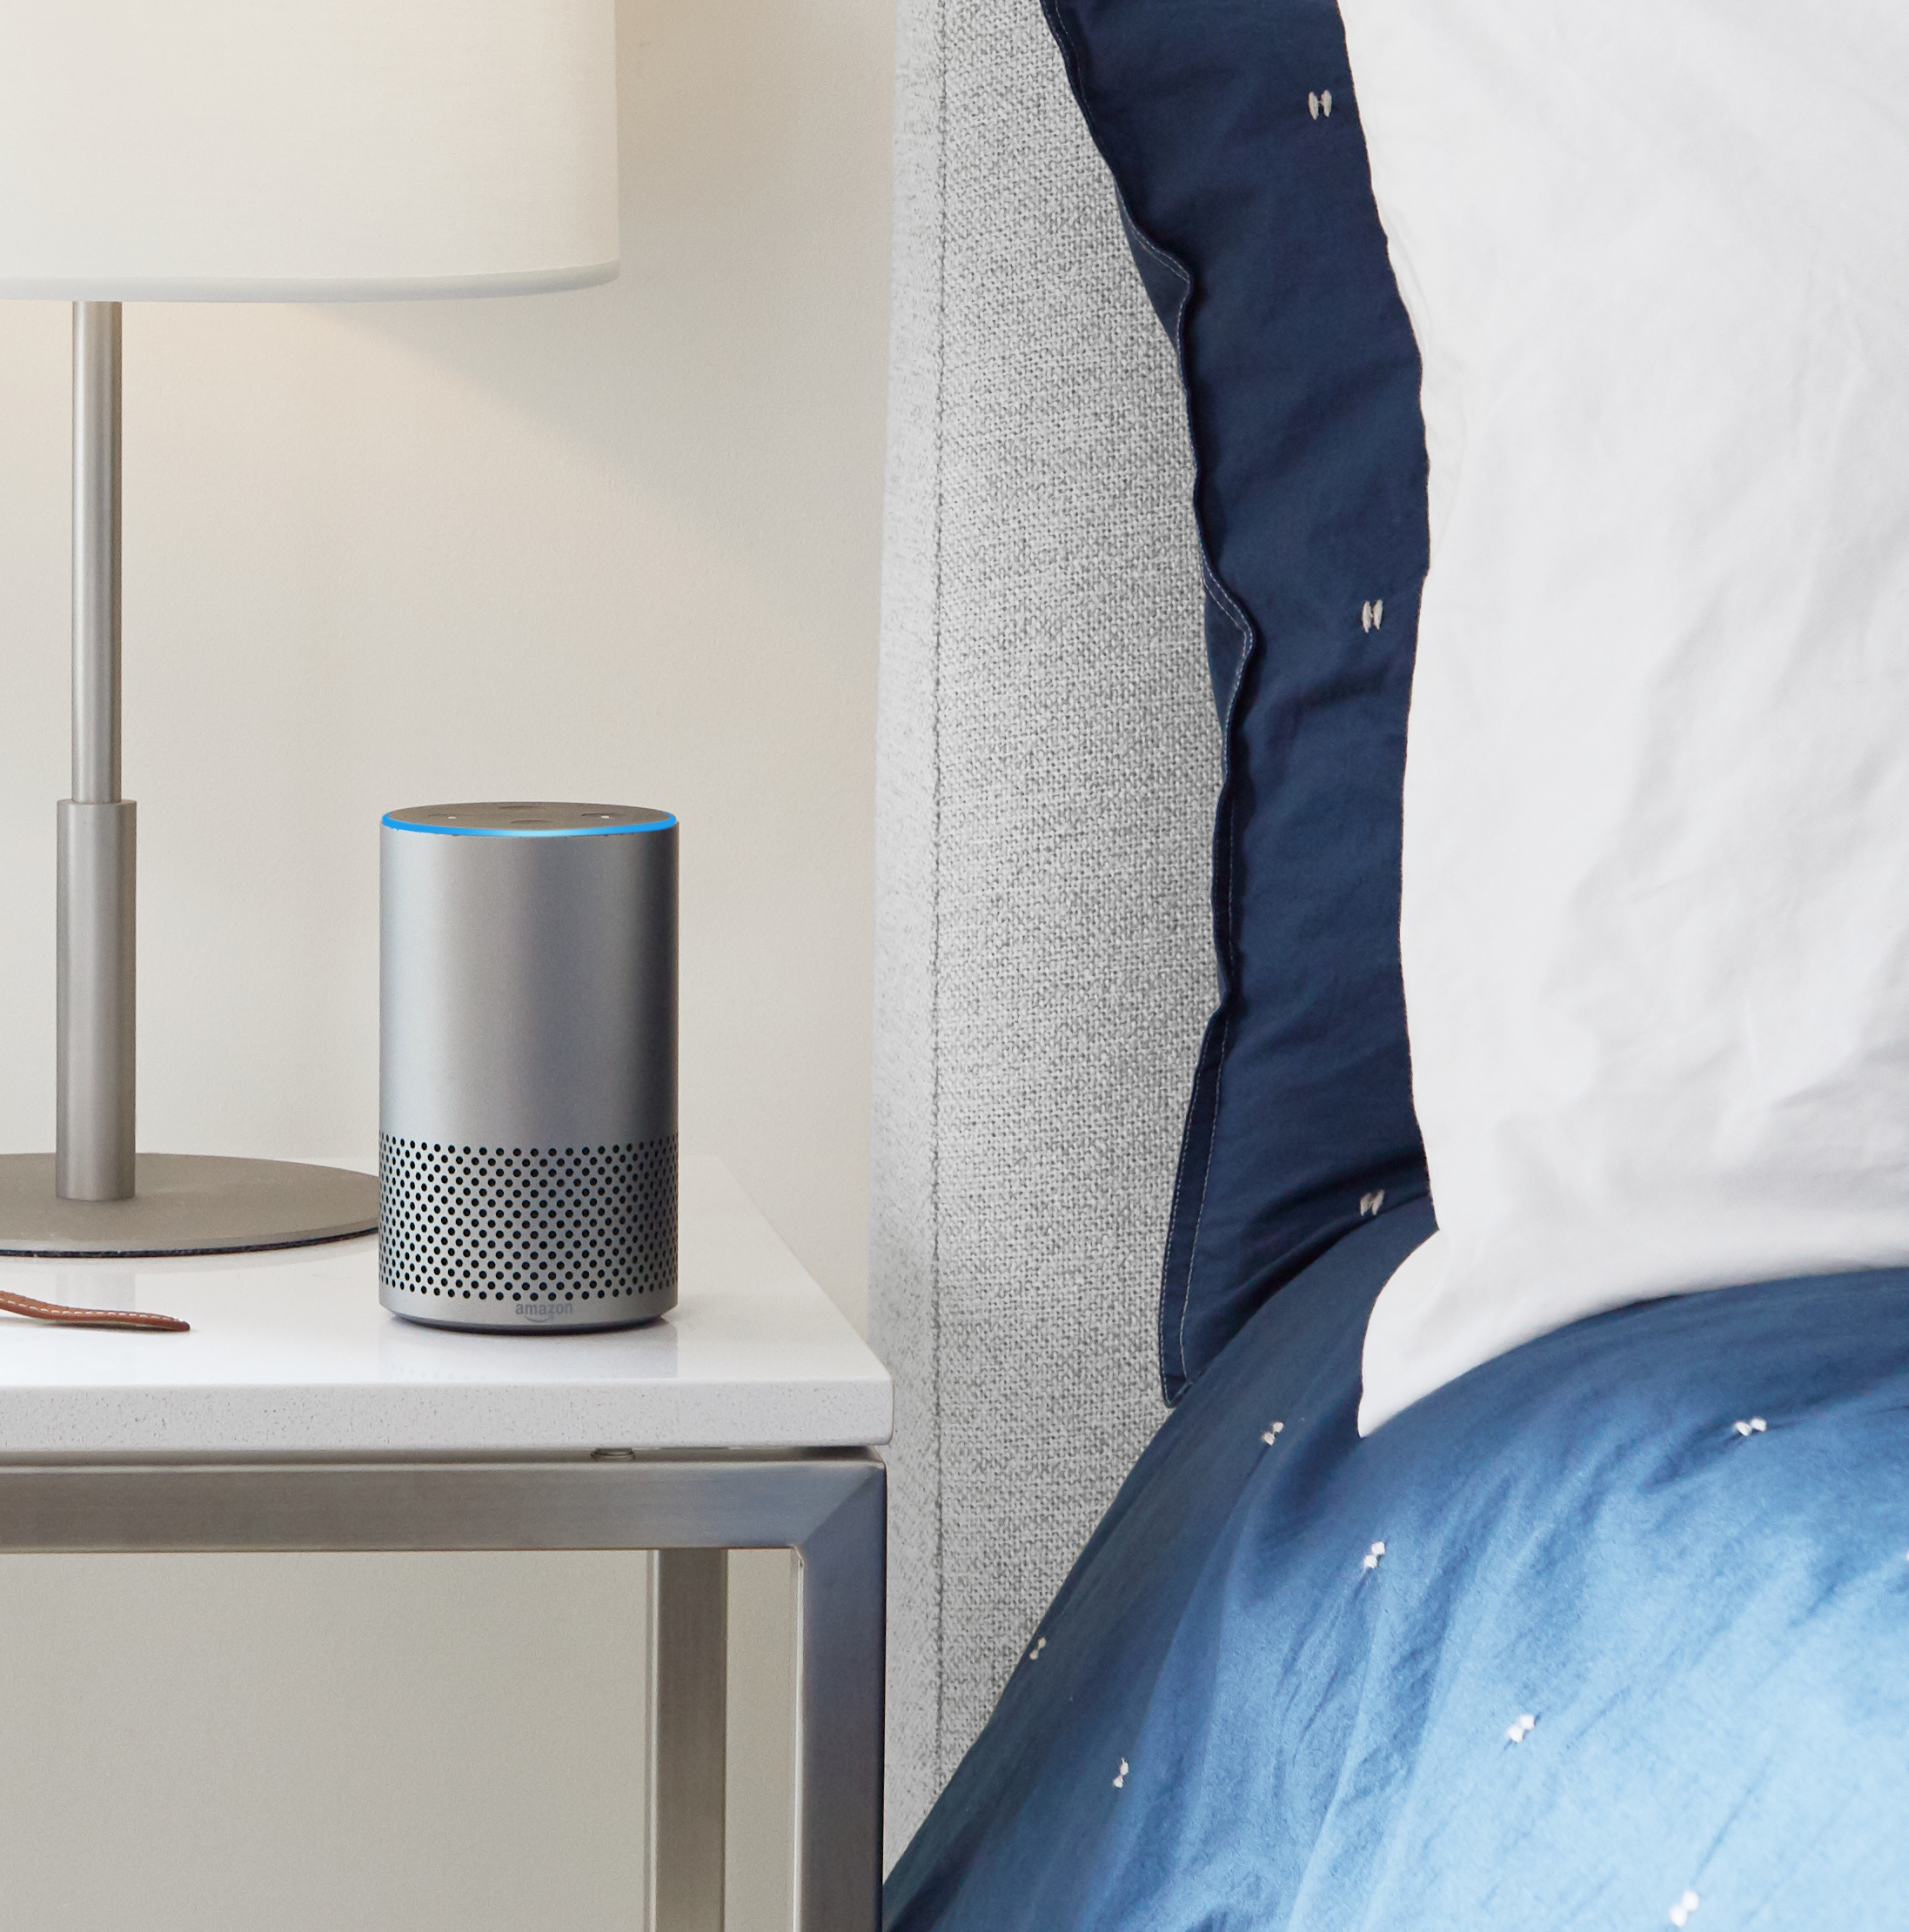 Amazon is adding Whisper Mode to its Echo smart speakers, letting Alexa respond in a hushed tone when summoned by users with lowered voices.